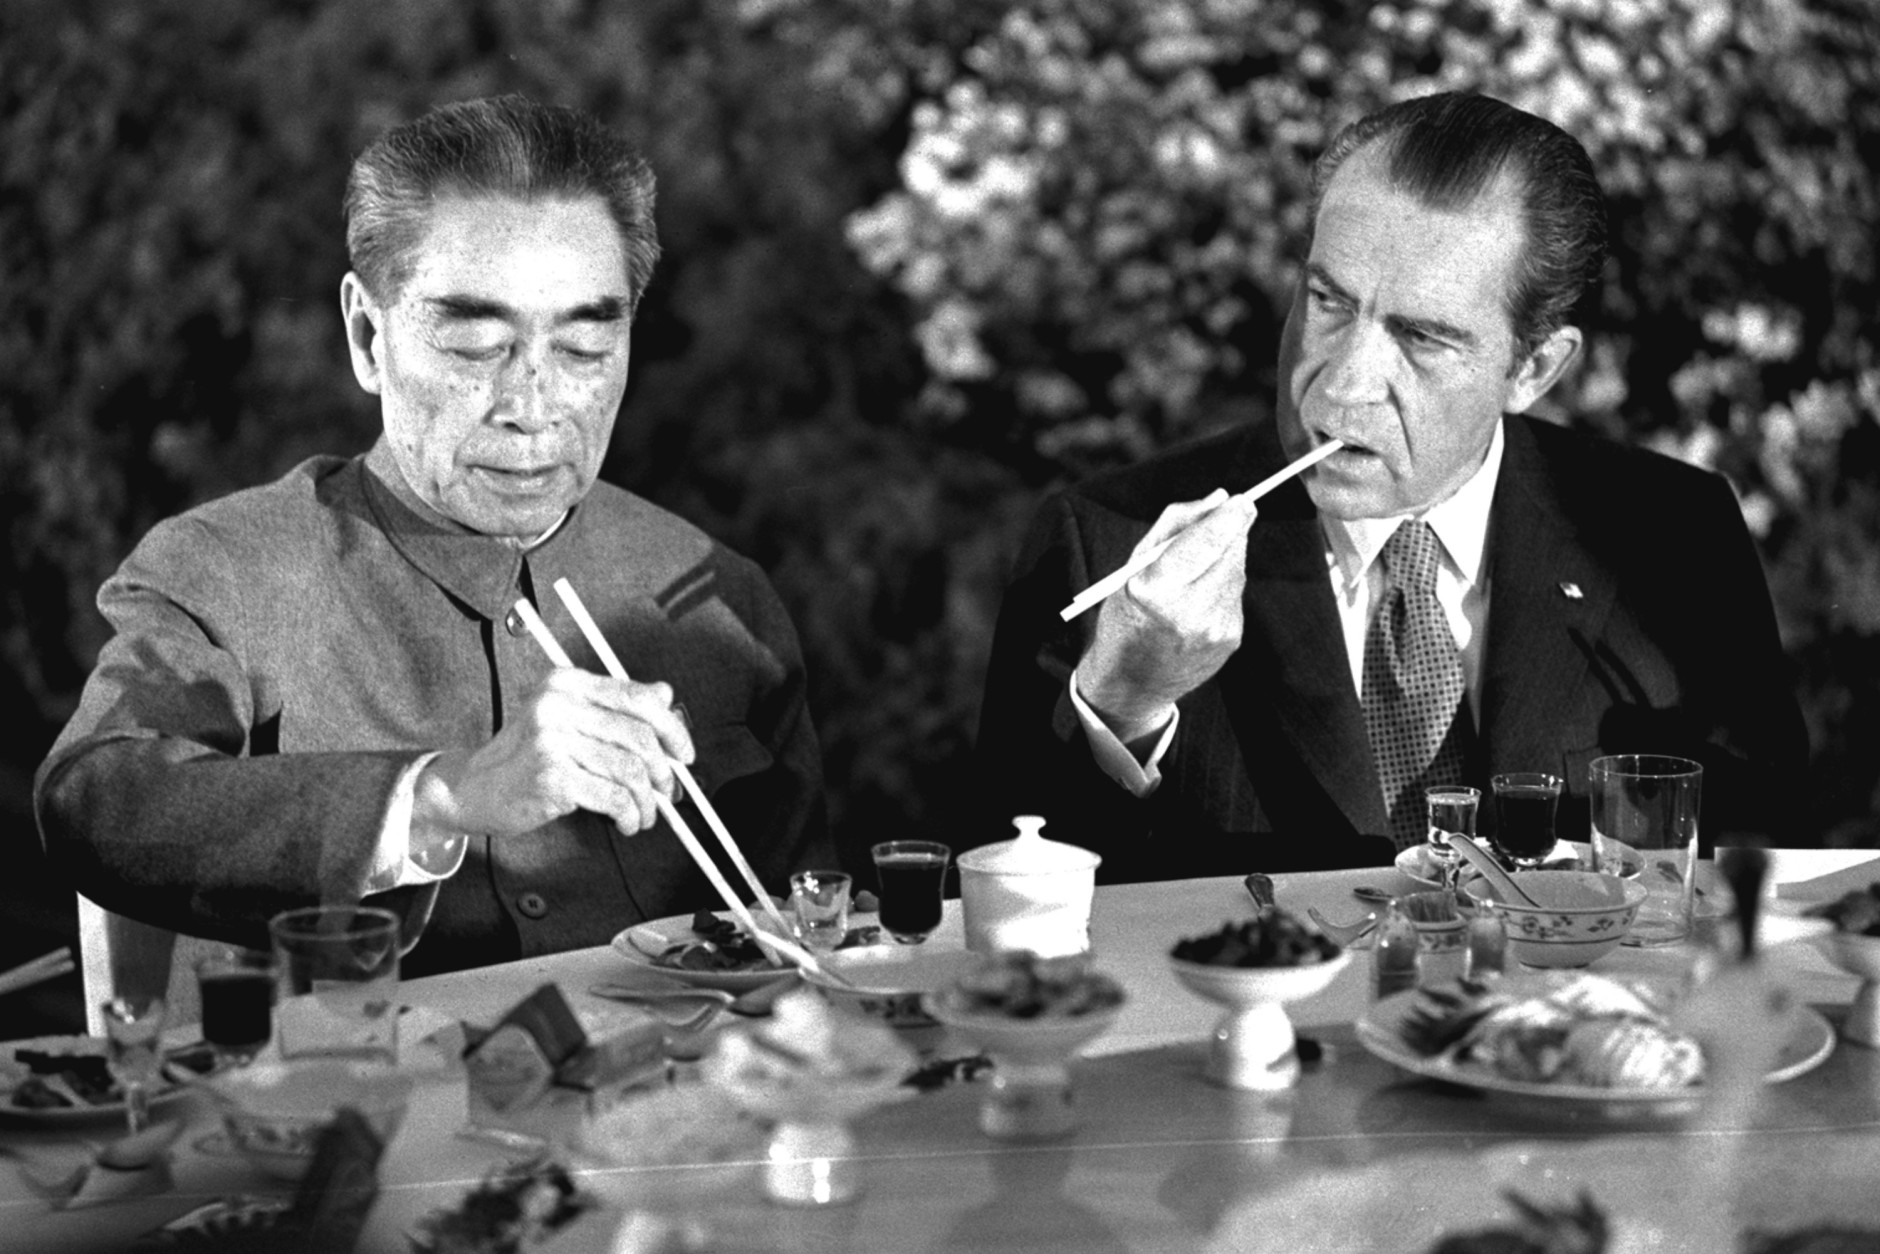 Premier Chou En-lai bends over in the Chinese manner to eat with chopsticks as President Nixon watches at a banquet in Shanghai, February 28, 1972.  (AP Photo/stf)